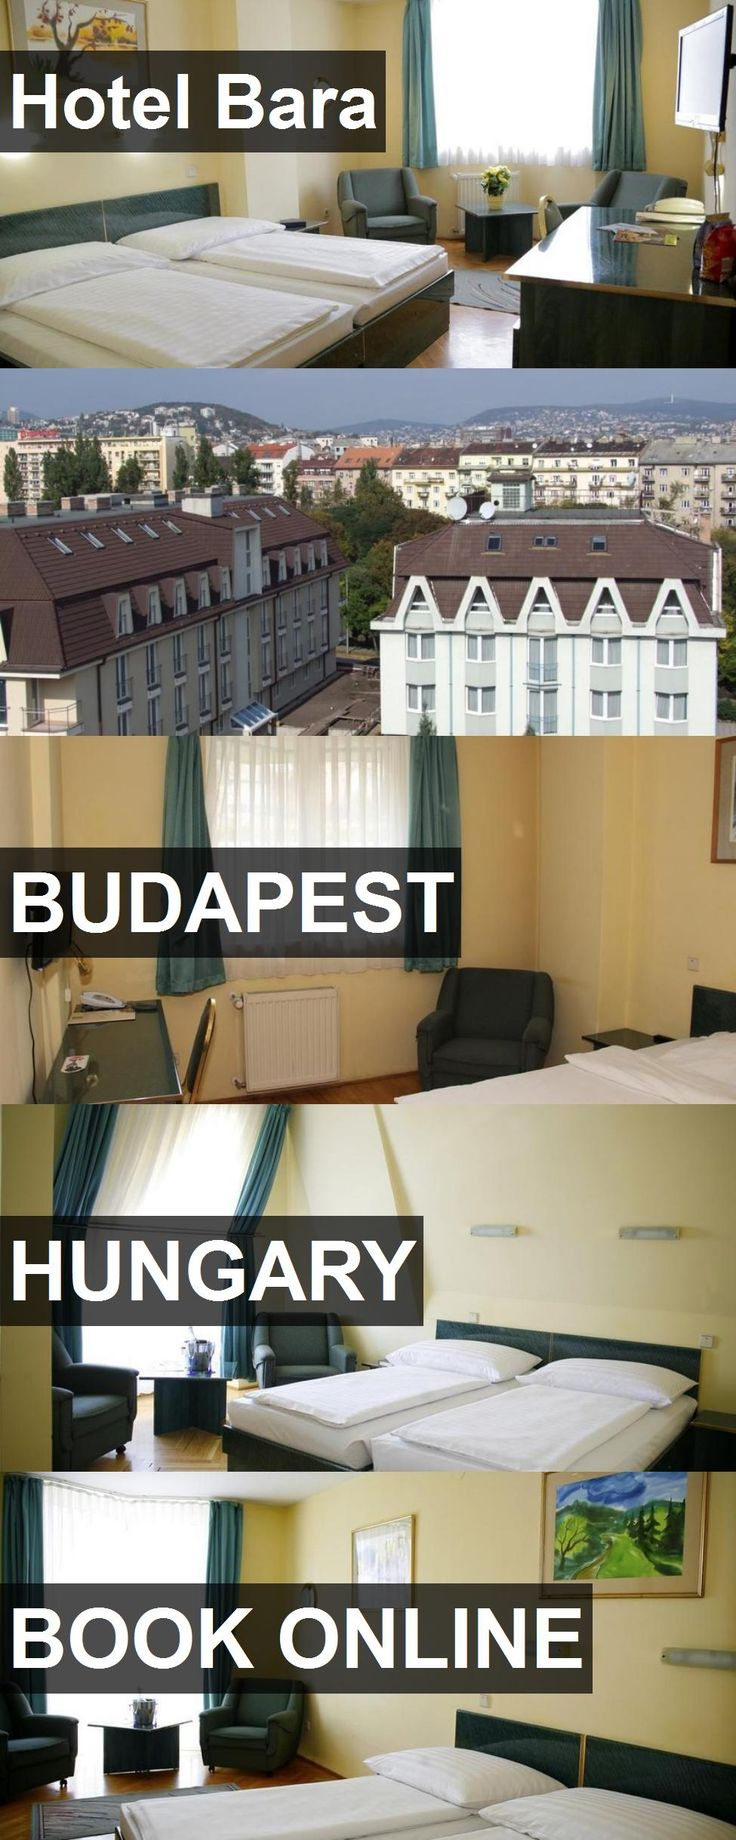 Hotel Bara in Budapest, Hungary. For more information, photos, reviews and best prices please follow the link. #Hungary #Budapest #travel #vacation #hotel